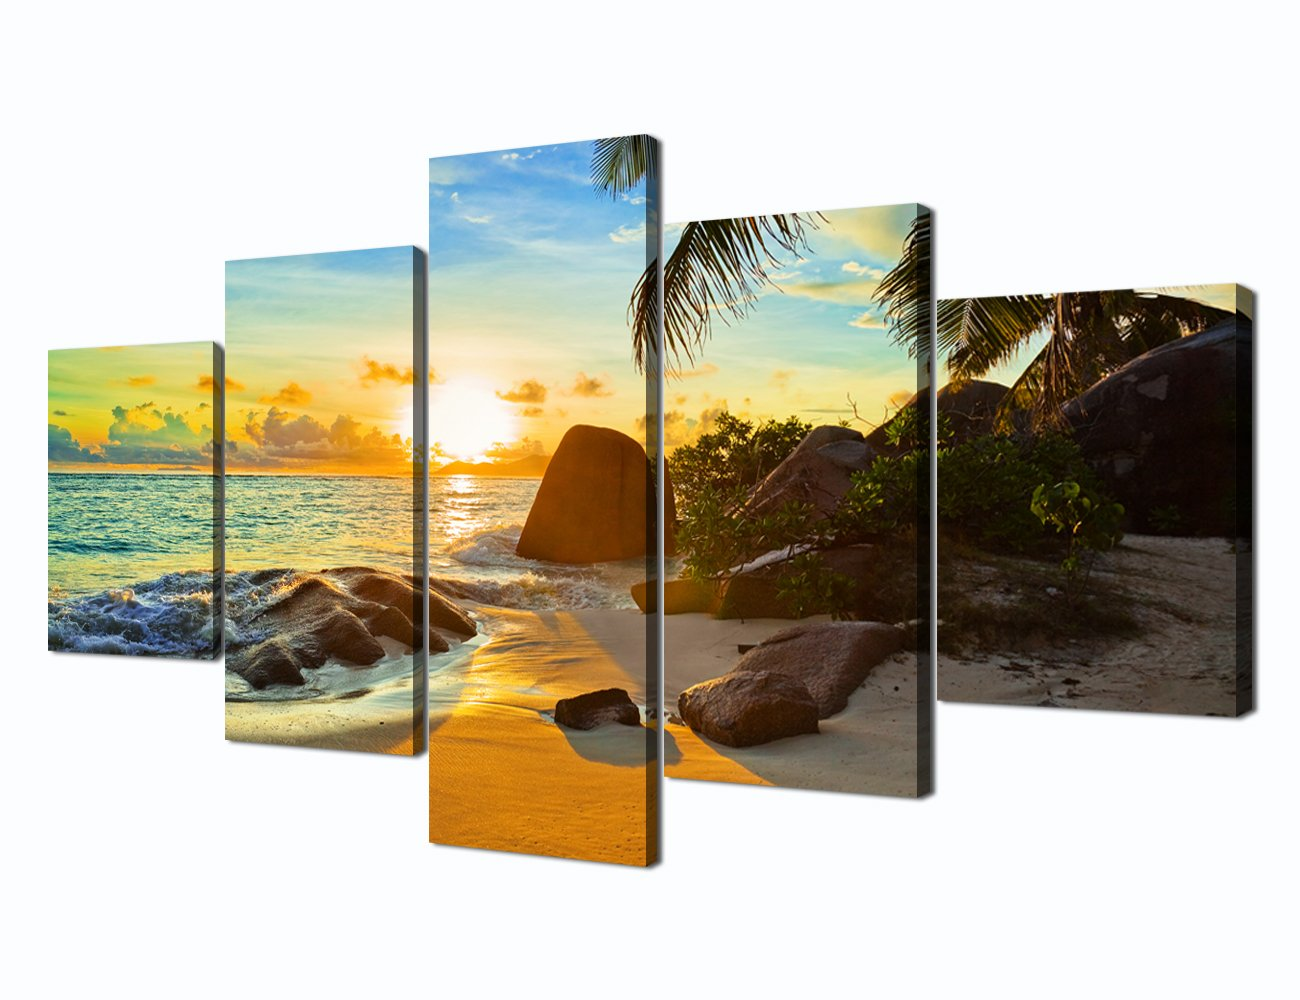 Sunset Beach Ocean Painting on Canvas 5 Panel Wall Art, Modern Landscape  Scenery Seascape Posters and Prints Pictures for Living Room Bedroom, ...